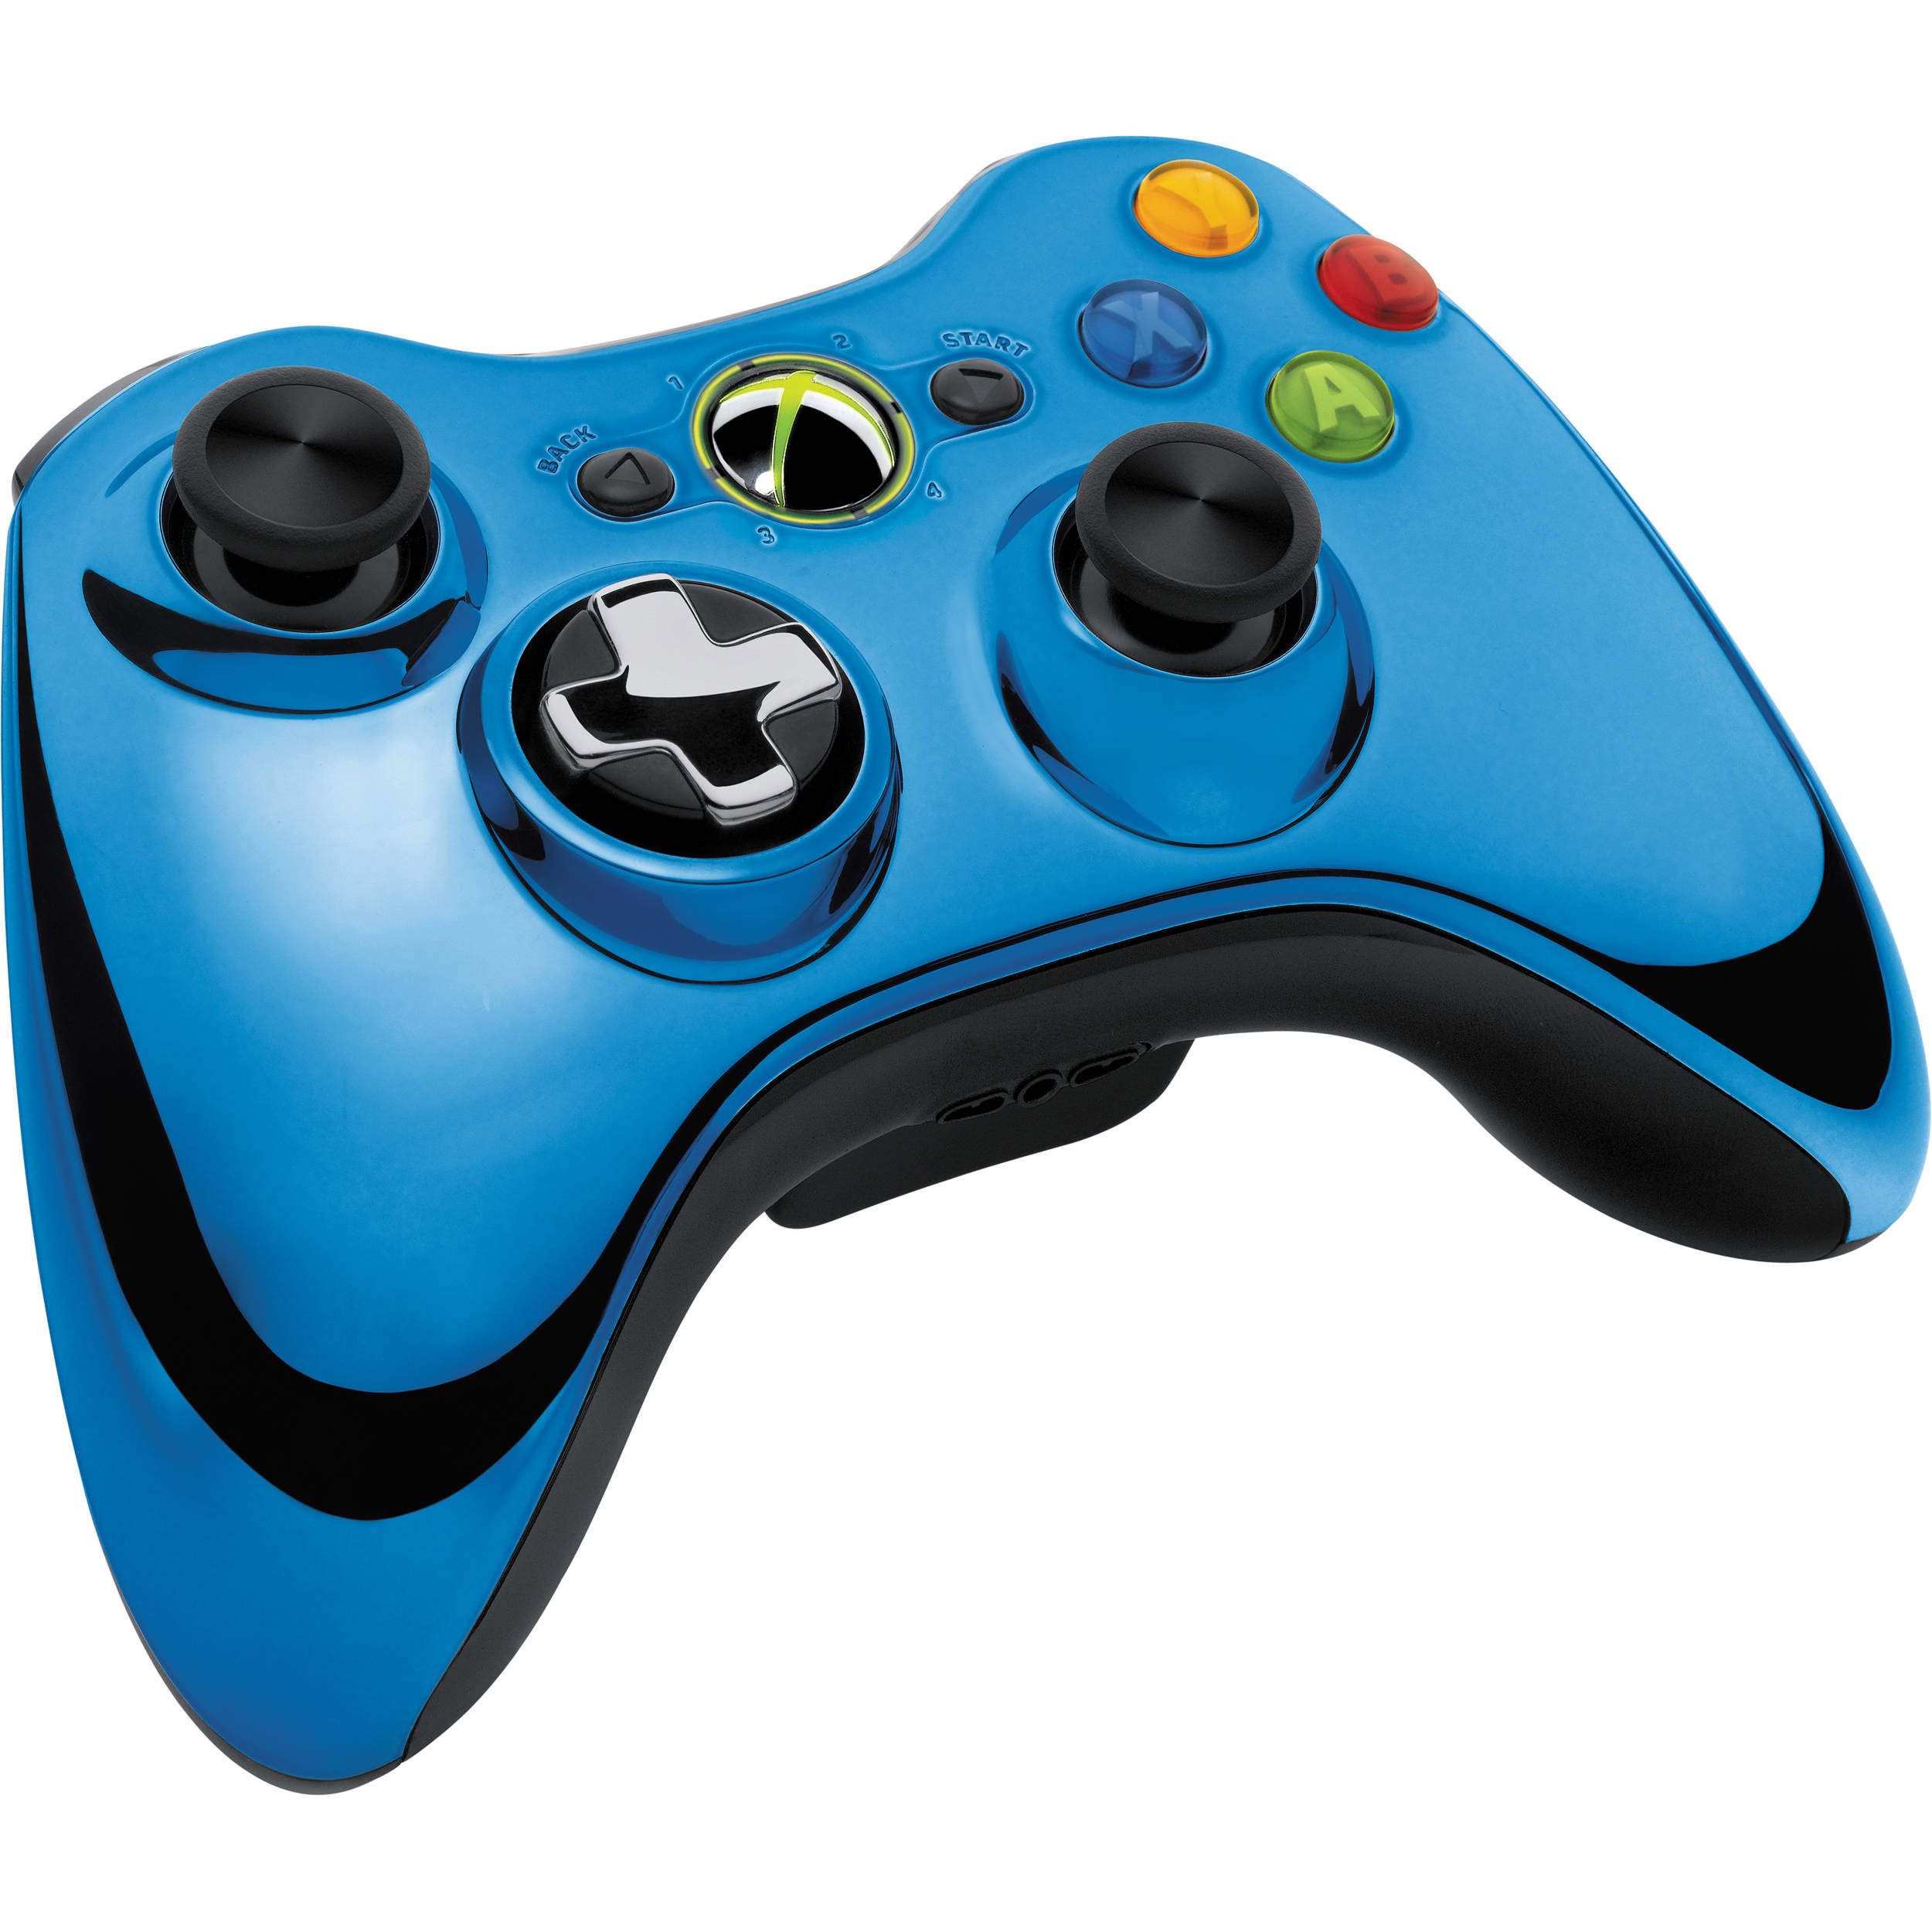 Microsoft Xbox 360 Special Edition Chrome Series 43G00023 BampHXbox 360 Controller Chrome Series